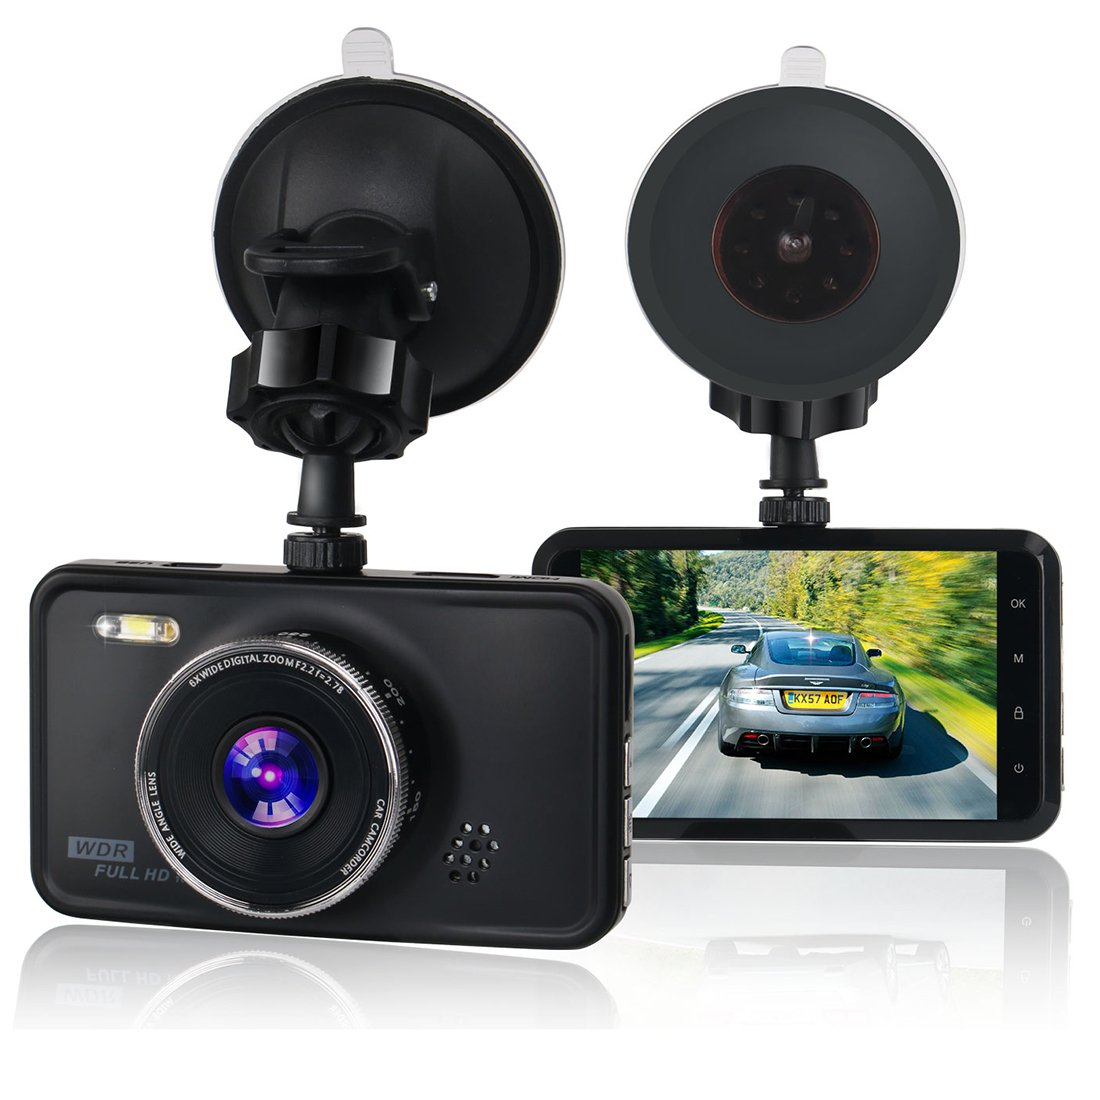 KASSADIN Dash Cam, 1080P Full HD Car Camera DVR Dashboard Camera Video Recorder 3 inch LCD Display 6G Lens with WDR, Loop Recording, G-sensor, Motion Detection SMOH-x